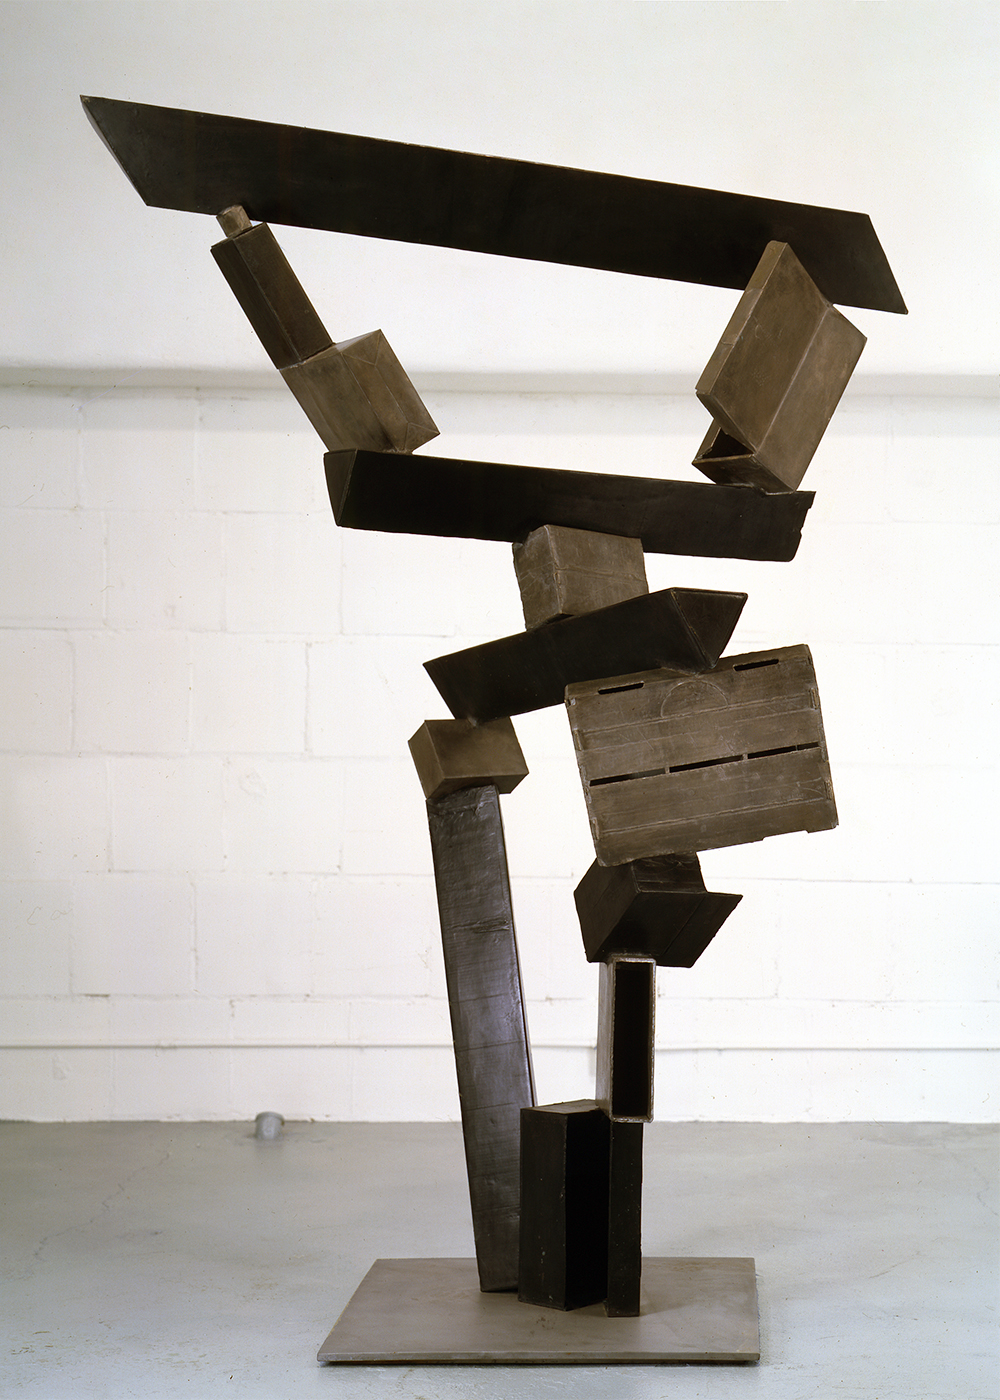 Don Gummer Sculpture The world on time, 1997